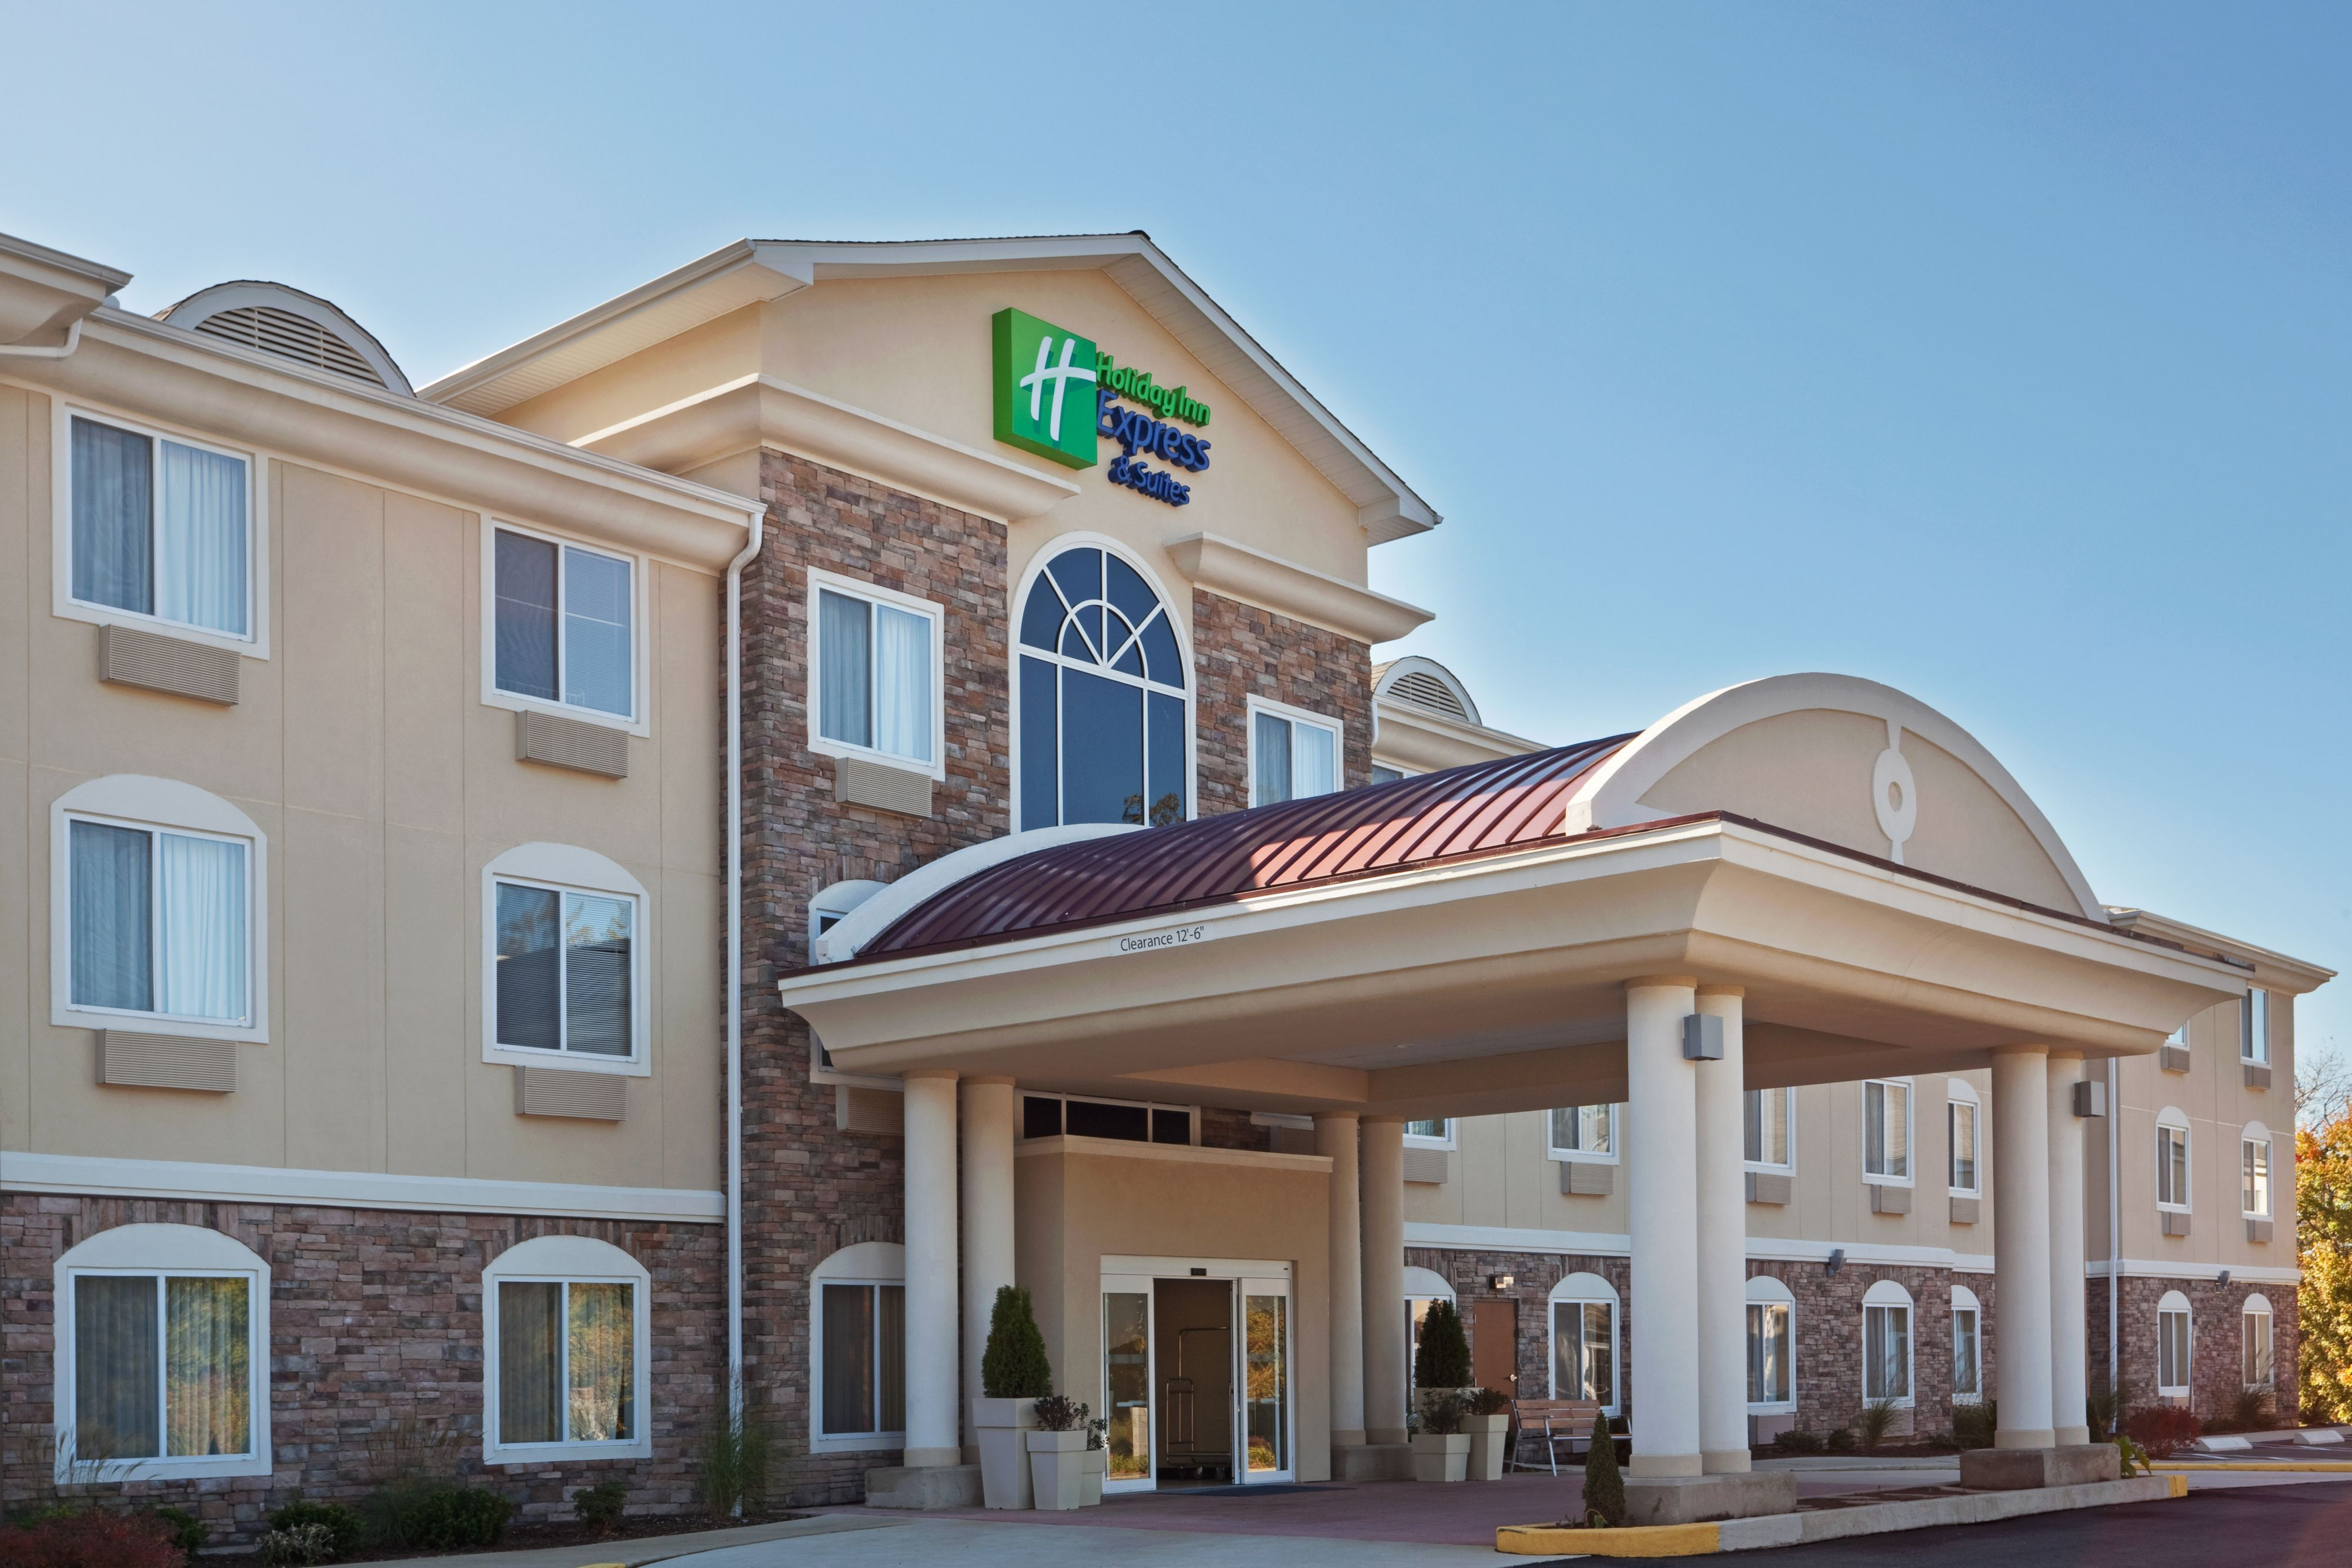 Holiday Inn Express & Suites Mentor (Lamalfa Conf Centre) image 5